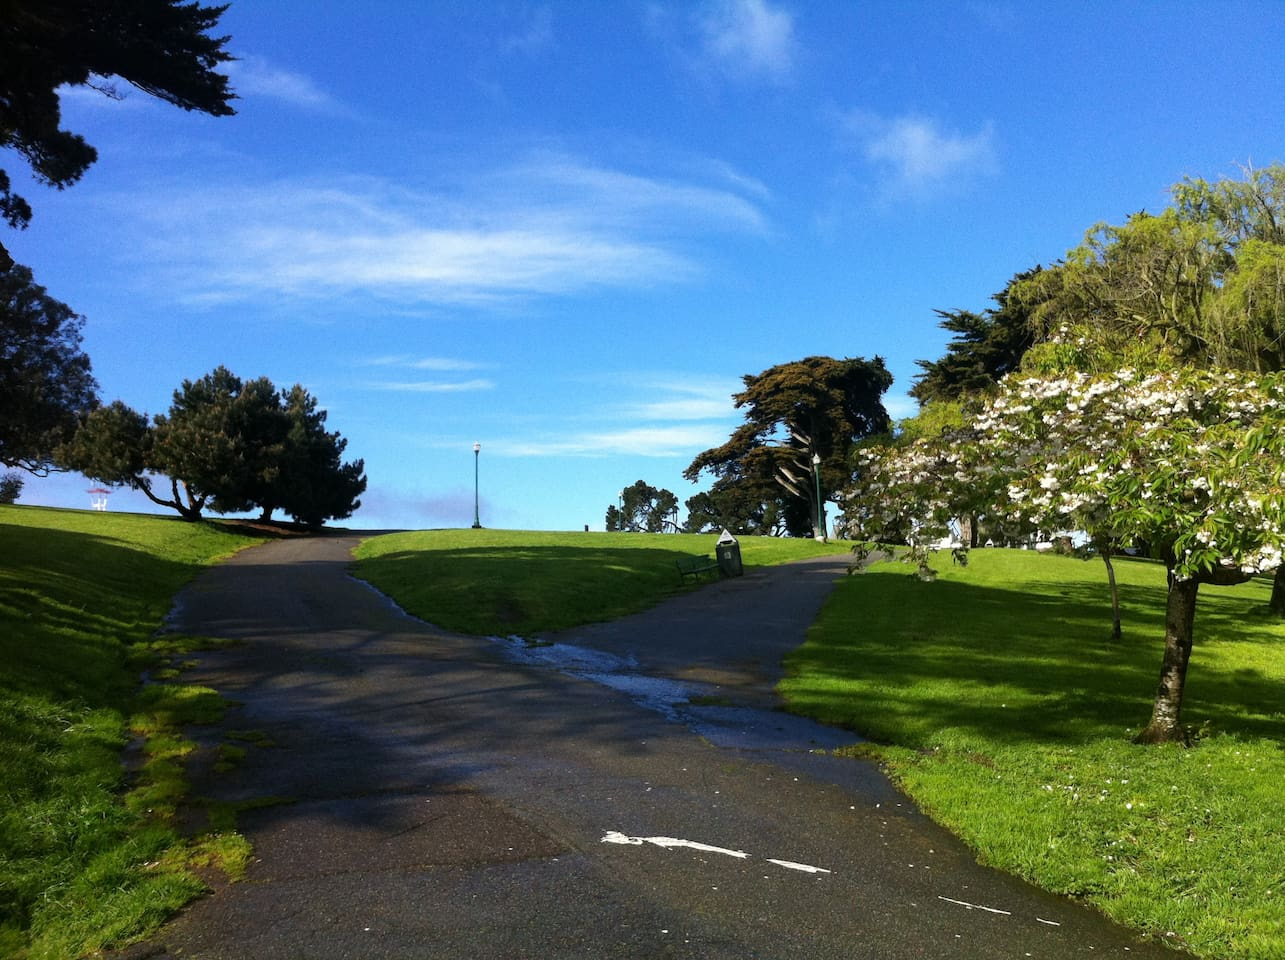 A beautiful Spring day after a passing rain shower in Alamo Square. The park is just a block away from our house.